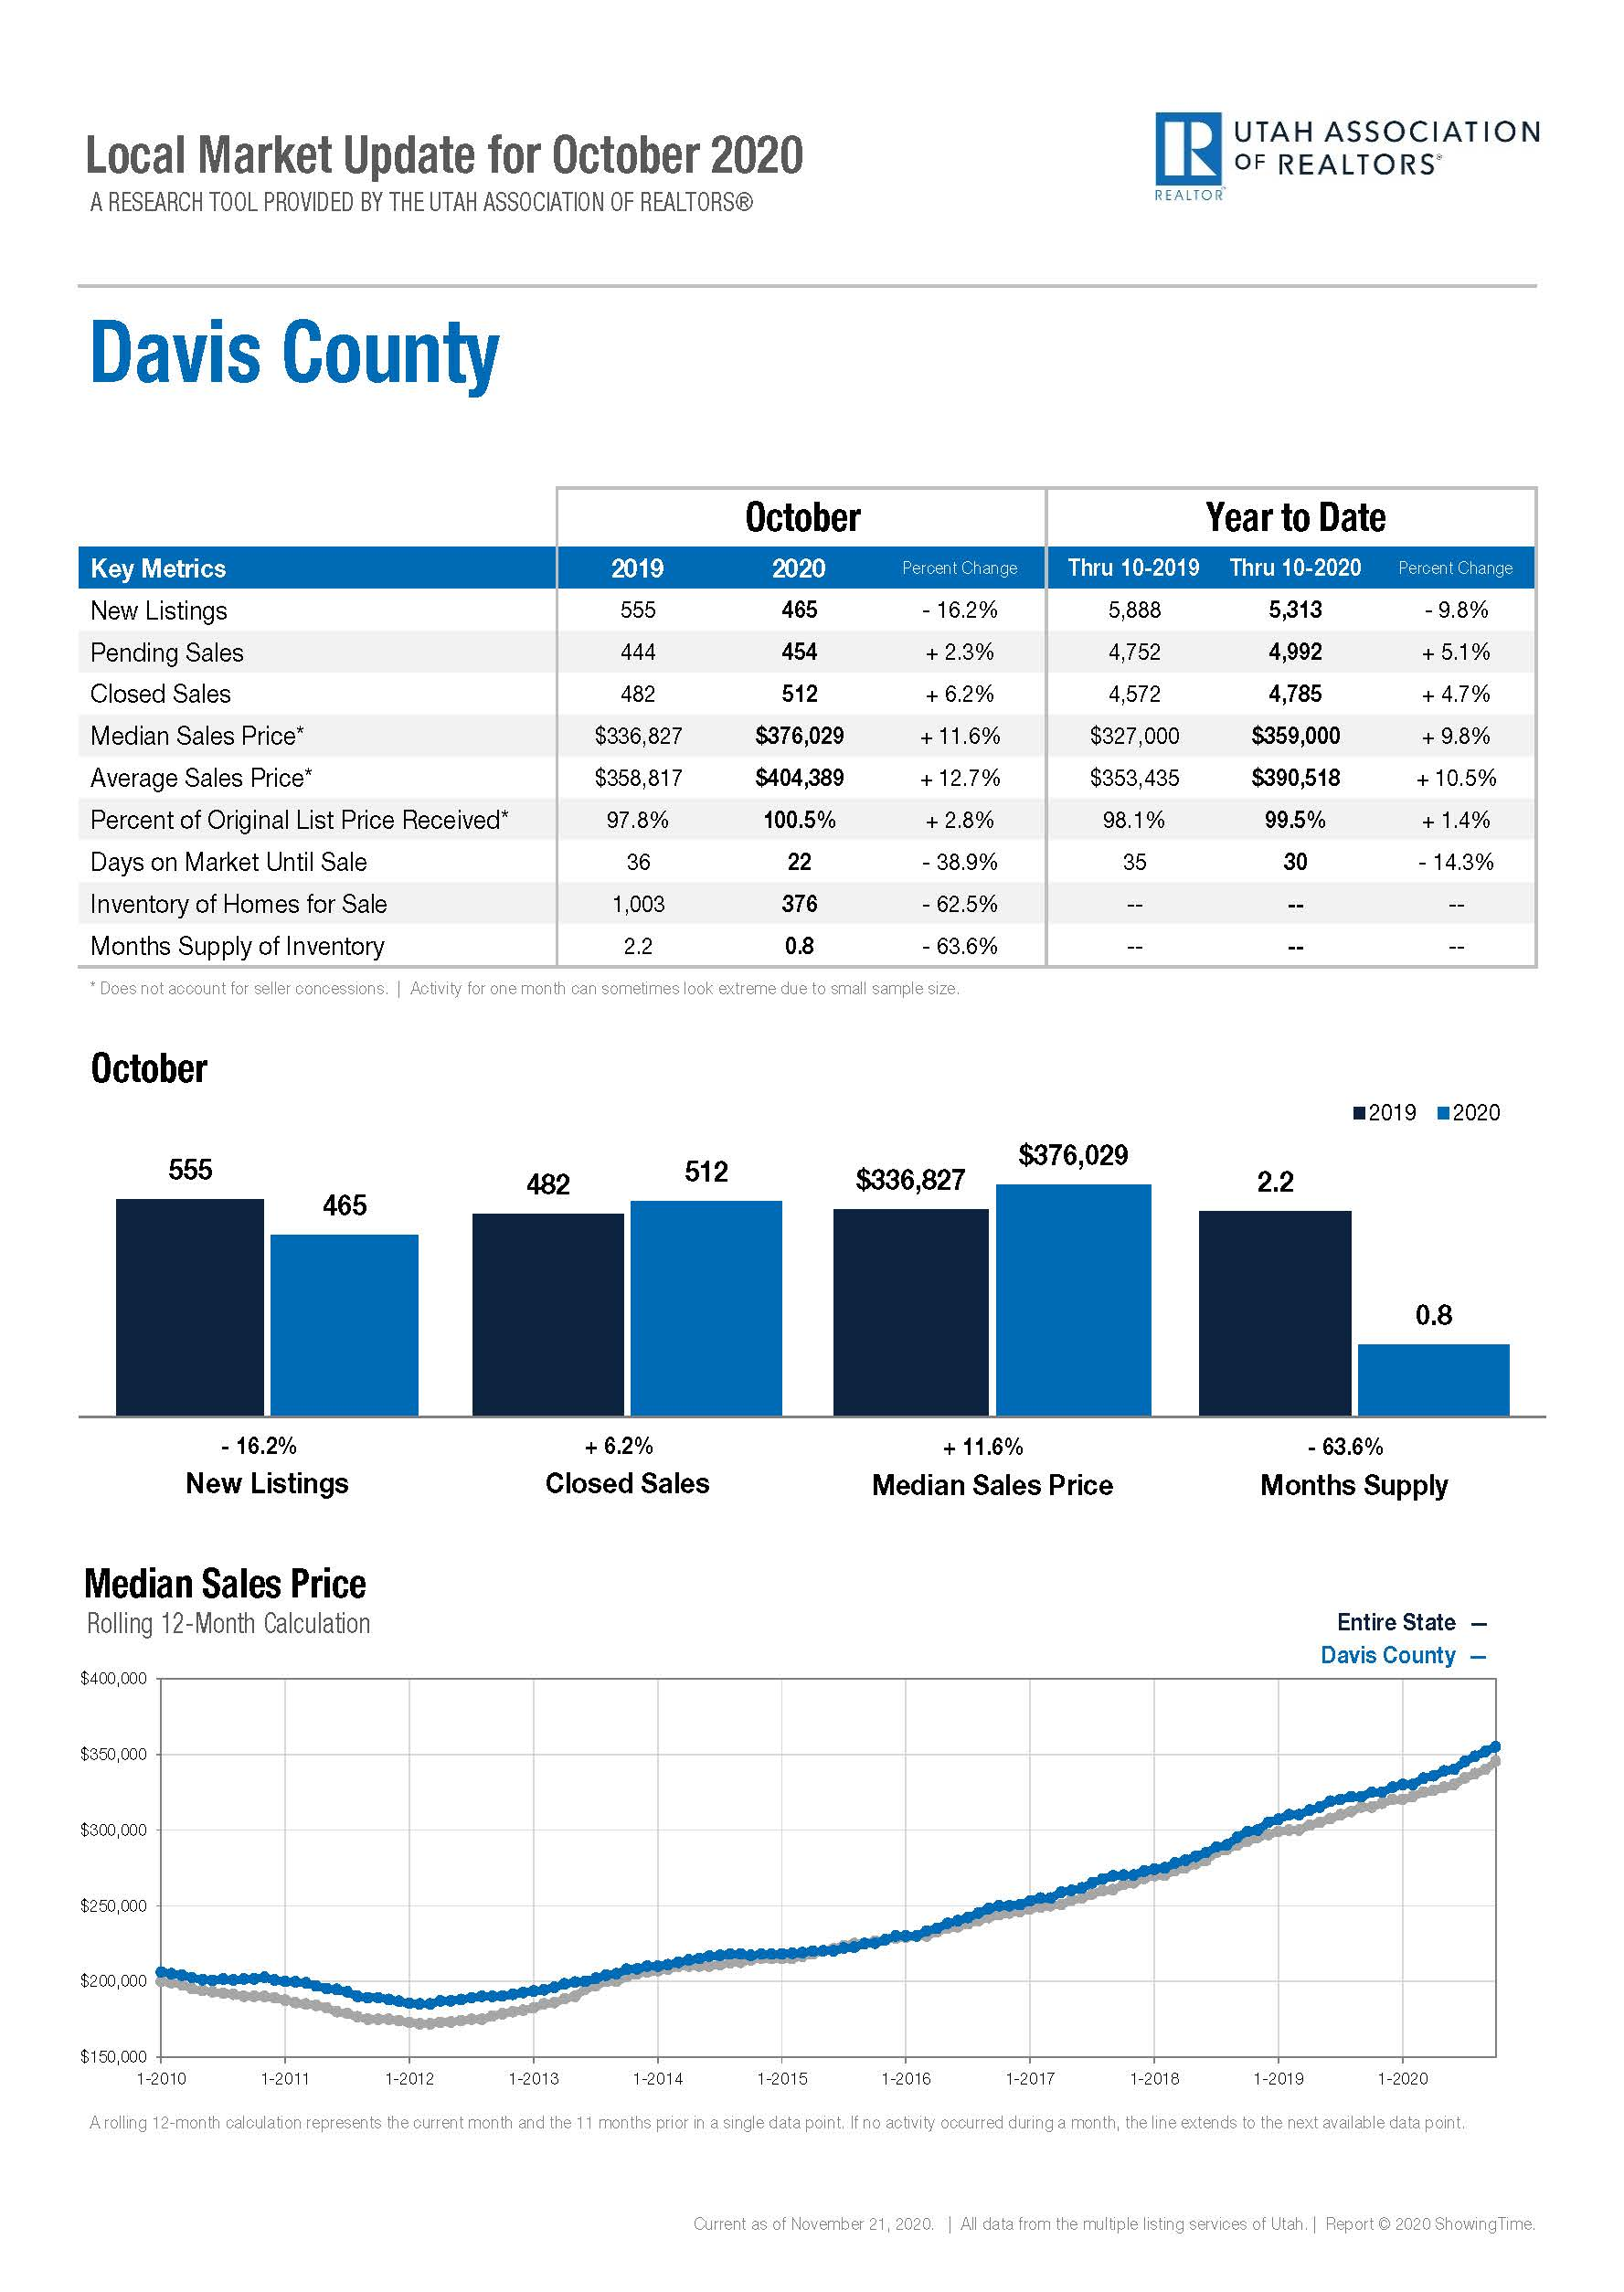 Local Marketing Update Davis County - October 2020